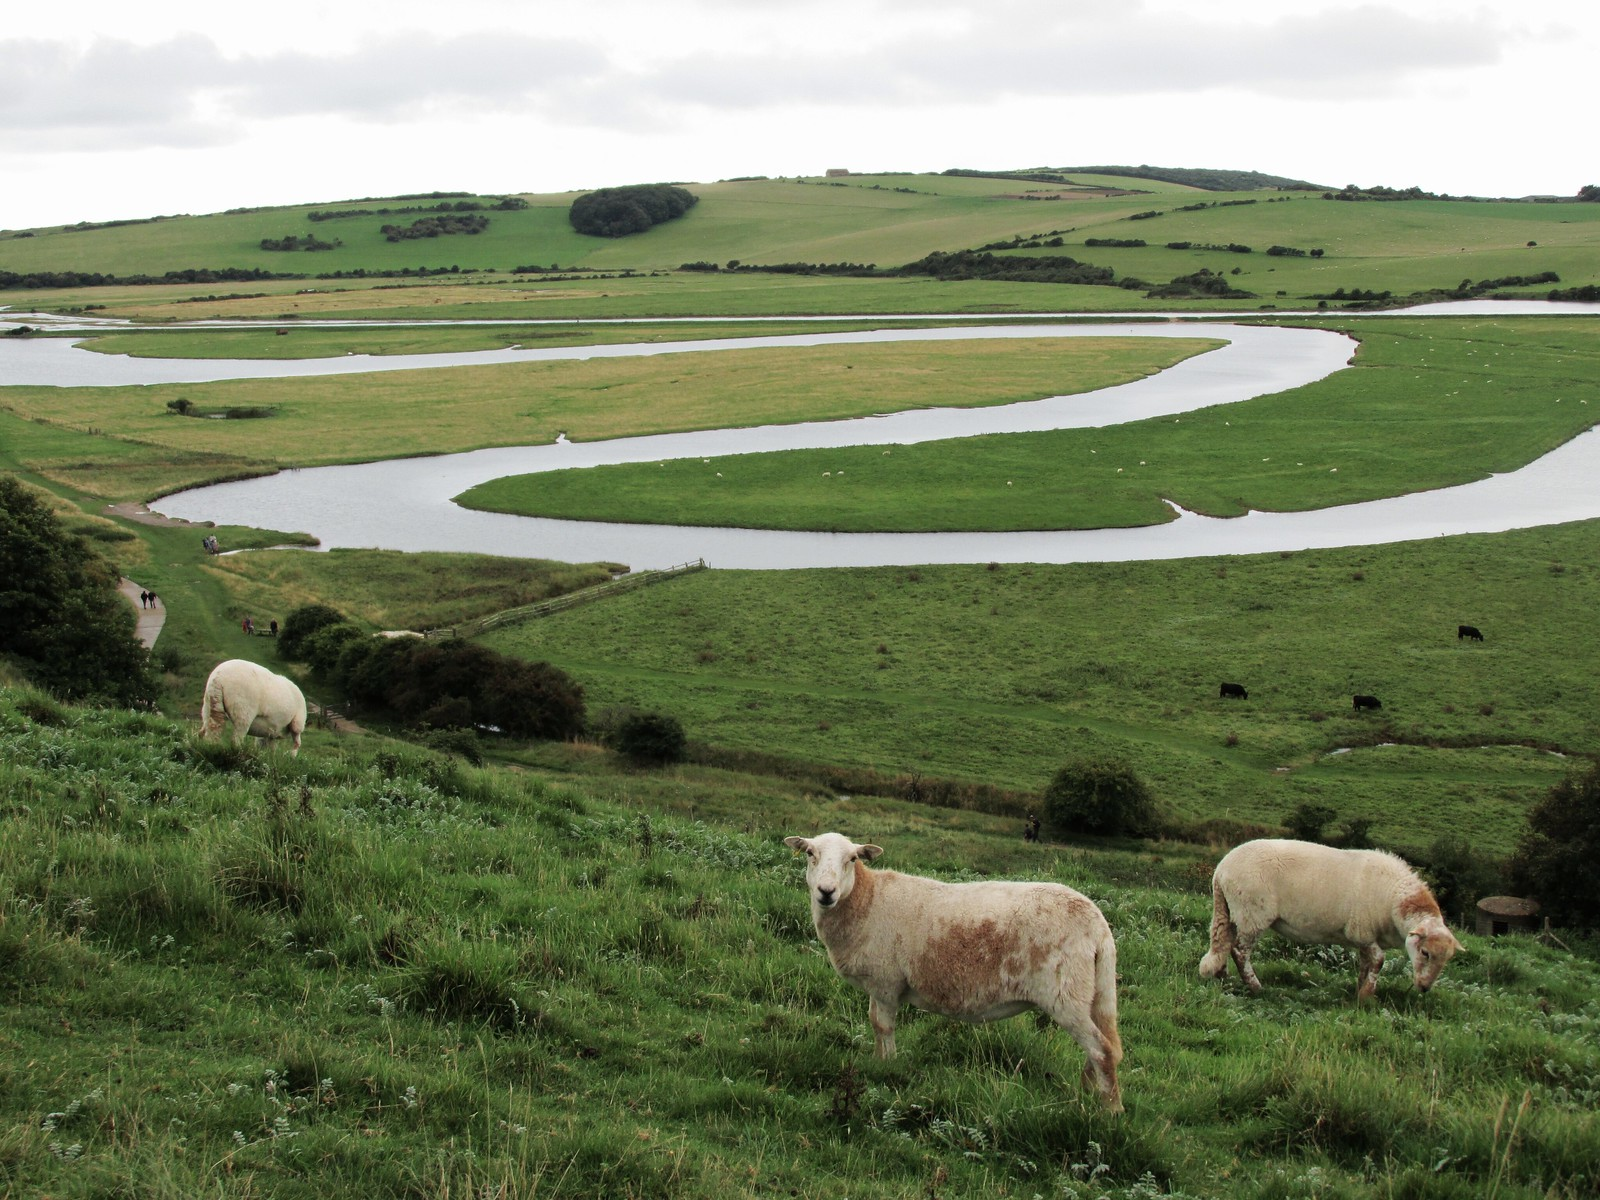 August 31, 2015: Seaford to Eastbourne Sheep grazing above Cuckmere River